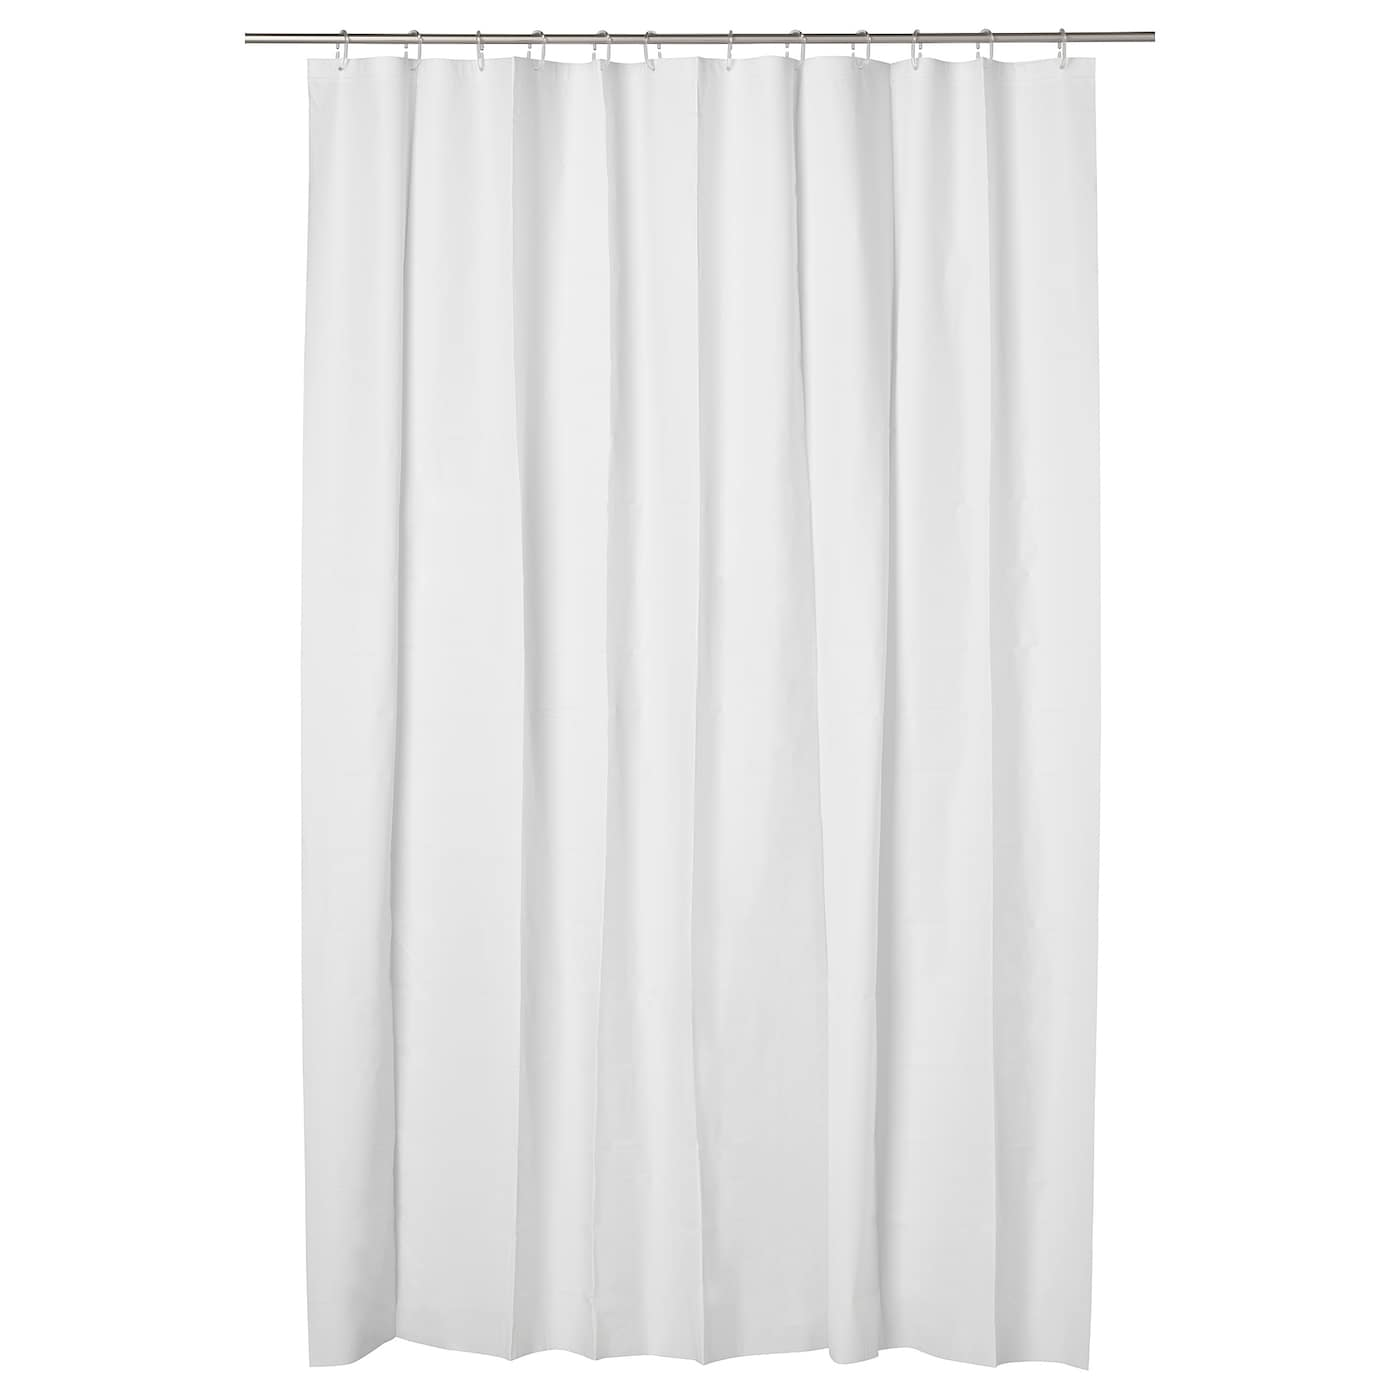 IKEA EGGEGRUND shower curtain Can be easily cut to the desired length.